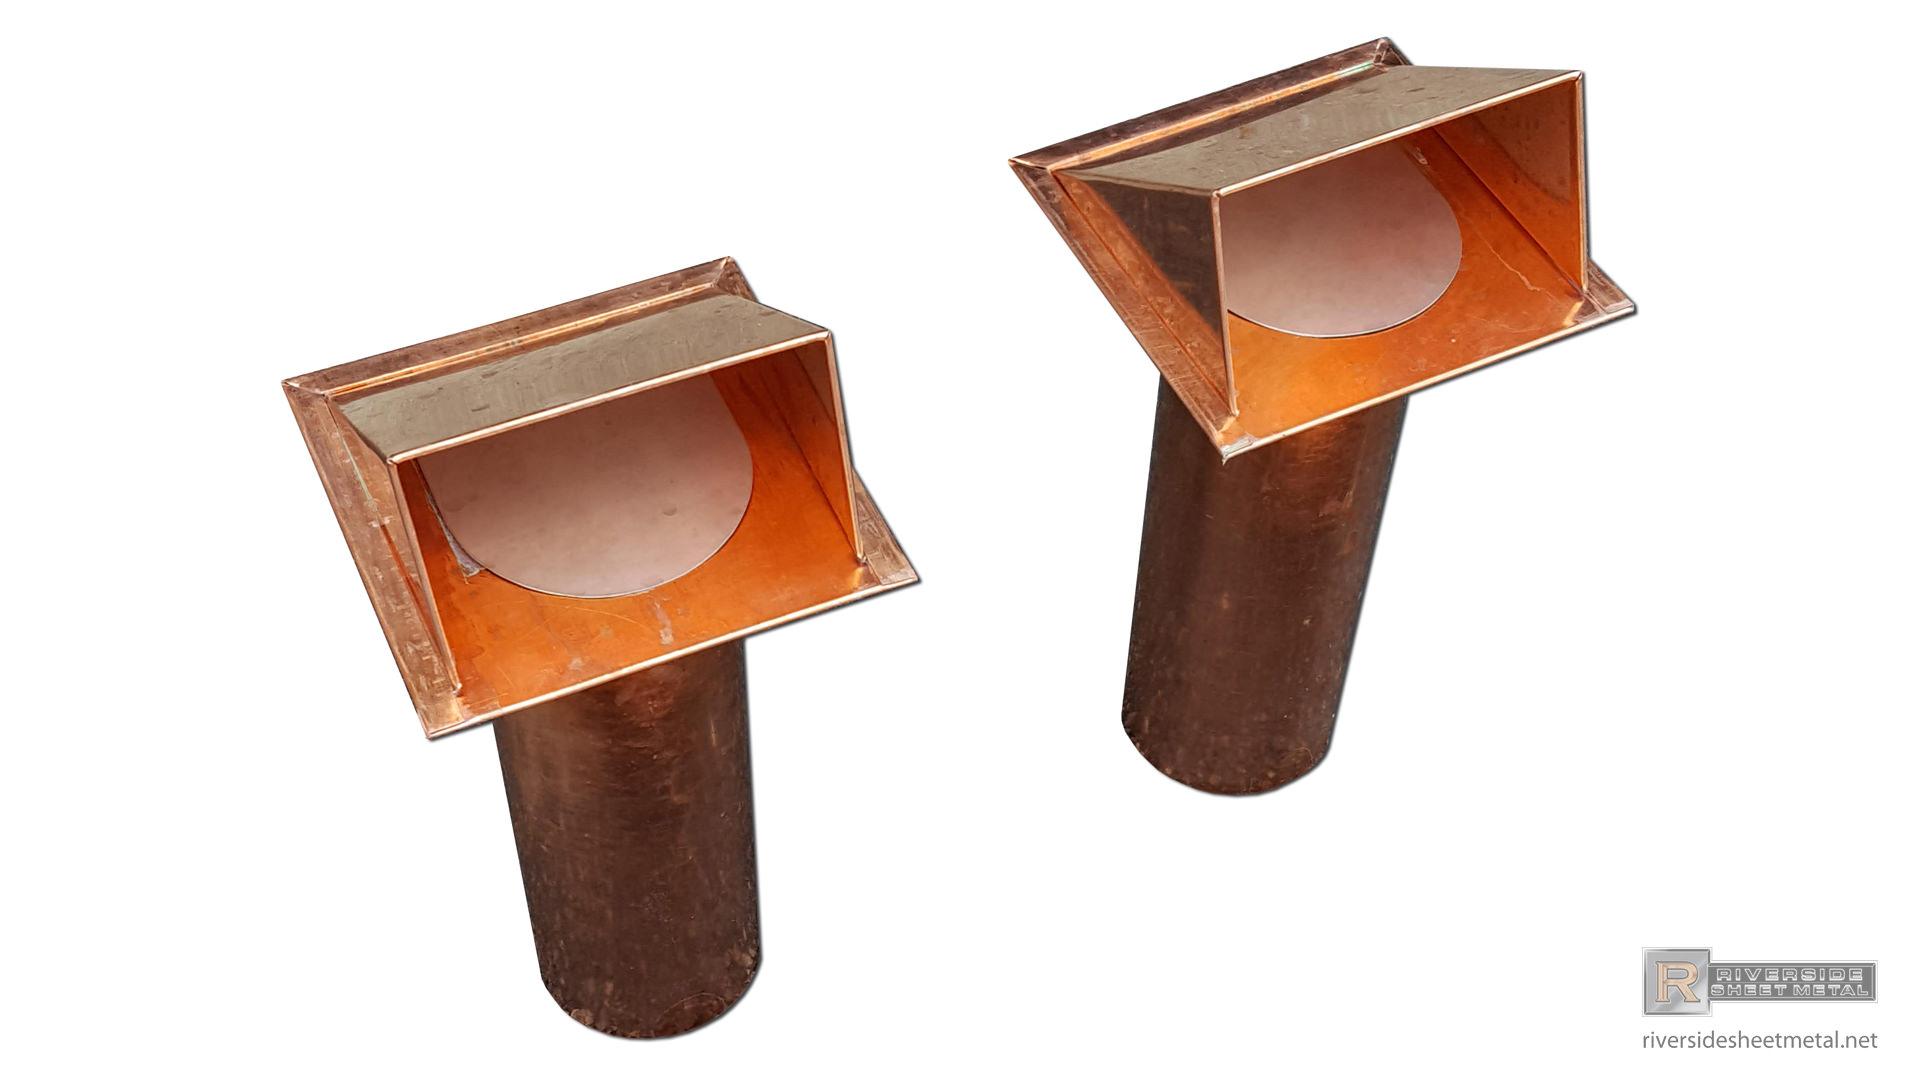 Custom Copper Dryer Vents Without Screen With Flapper